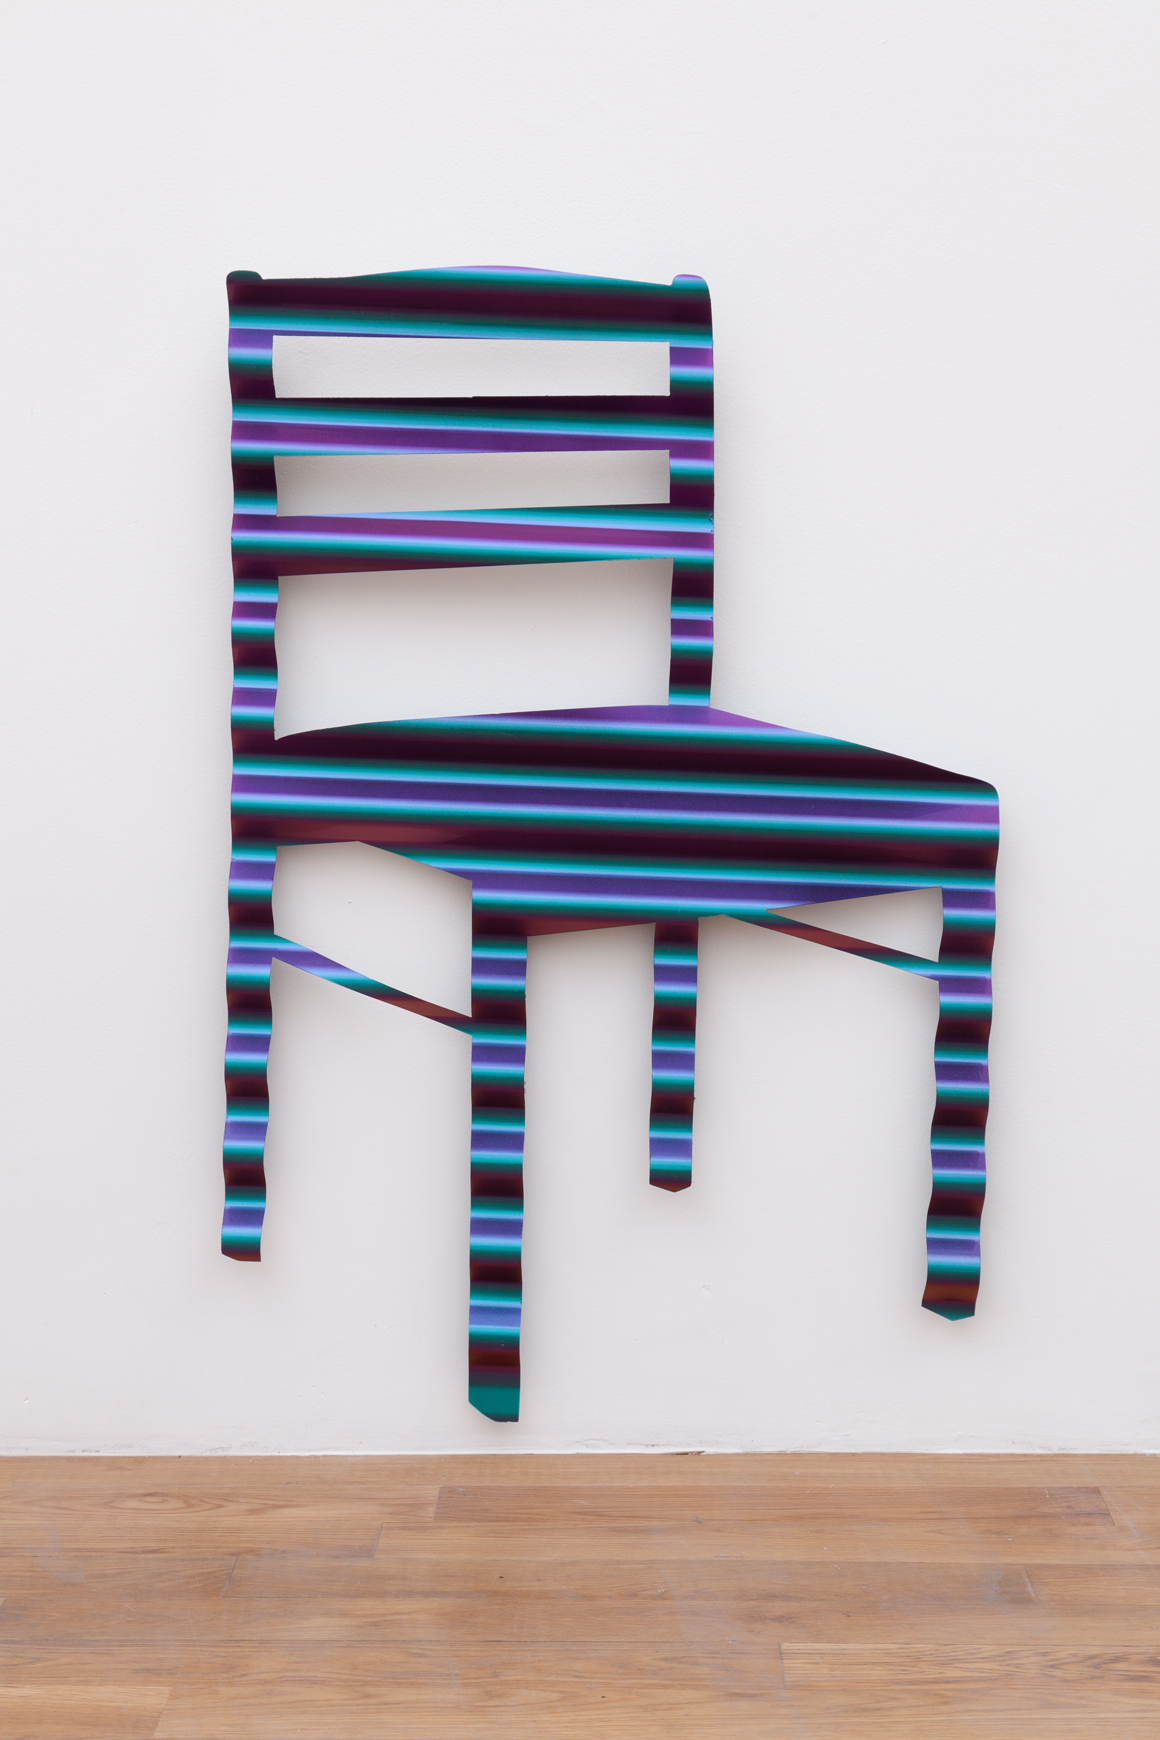 <p><em>2 Chairs</em><span class='media'>Chameleon auto paint on corrugated steel</span>35 x 23 in  (88.9 x 58.4 cm)<br>2017<br><a class='inquire' href='mailto:info@gildargallery.com?subject=Artwork Inquiry DOBE0028&body=I am interested in finding out more about 2 Chairs by Dmitri Obergfell'>Inquire</a></p>